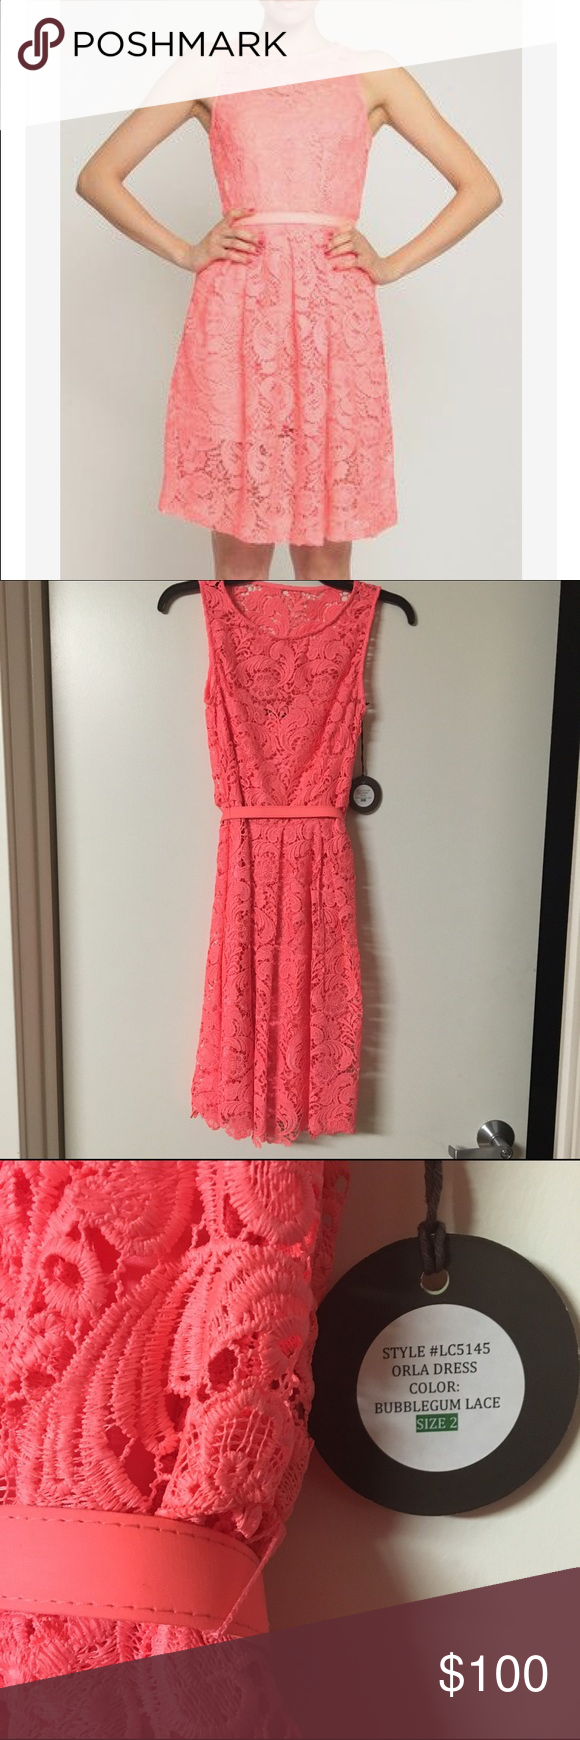 Eva Franco Orla Dress Bubble Gum Lace Fit & Flare Sample Size 2, NWT | bright coral lace | sleeveless | includes slip and belt of same color | fit and flare style / a-line Eva Franco Dresses Midi